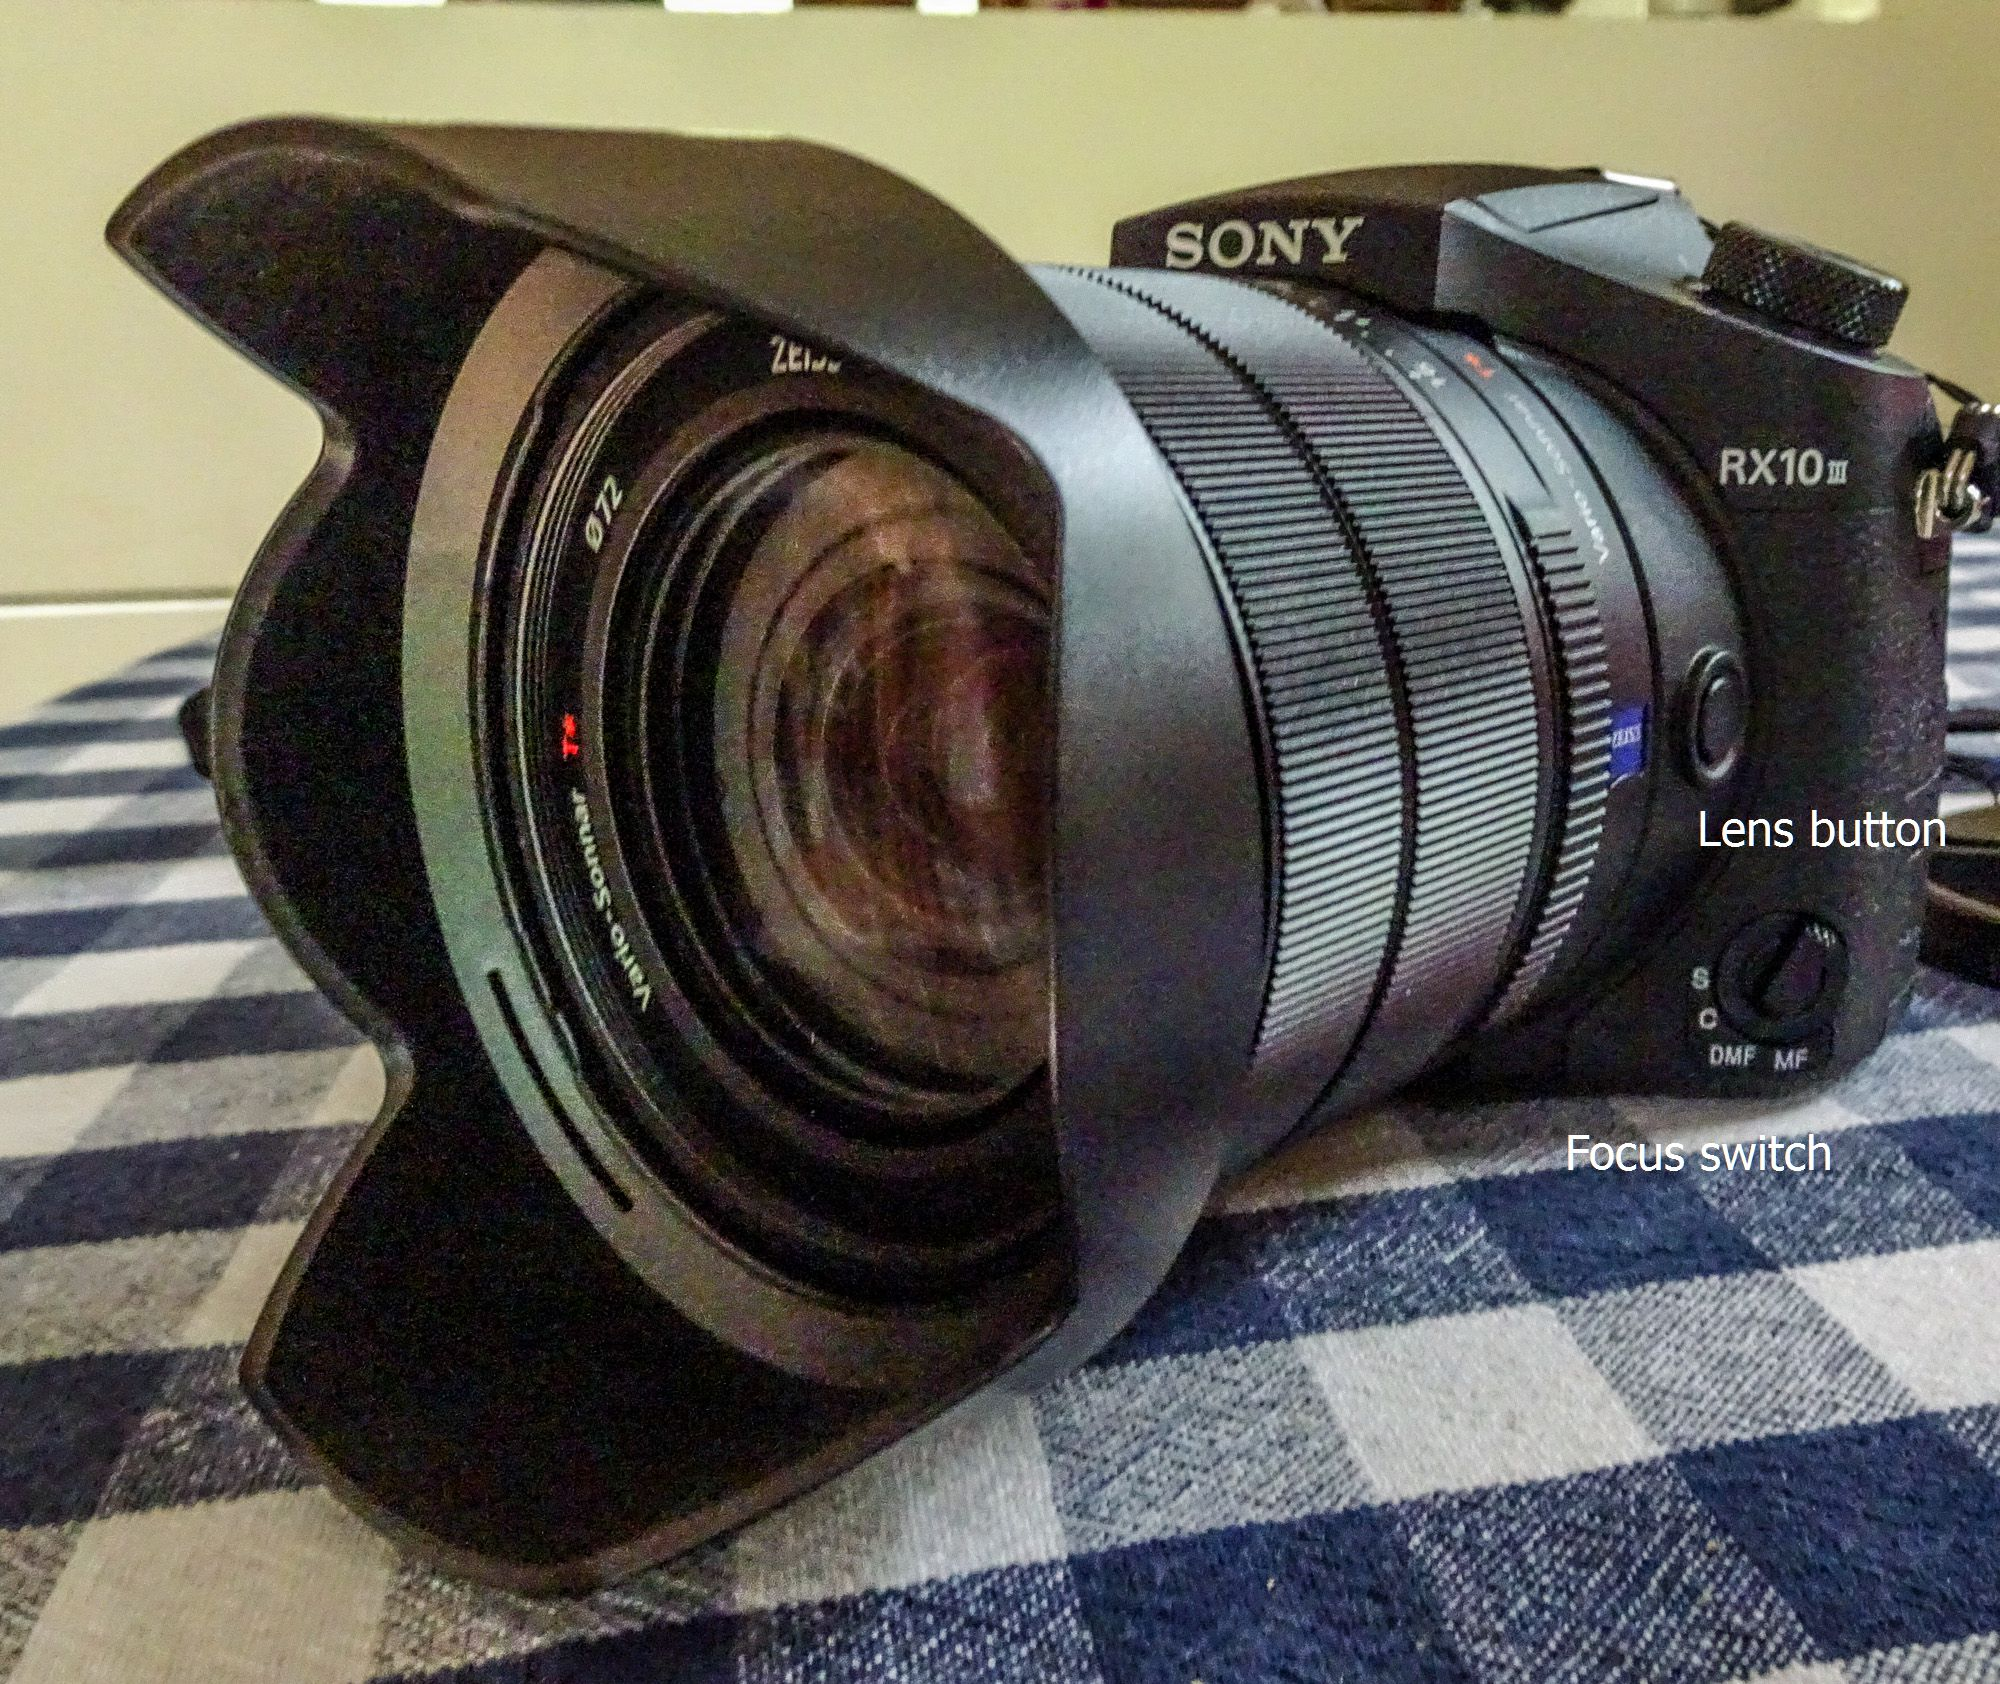 Sony RX10iii  Yes, but is it really a P&S superzoom? – Point & Shoot